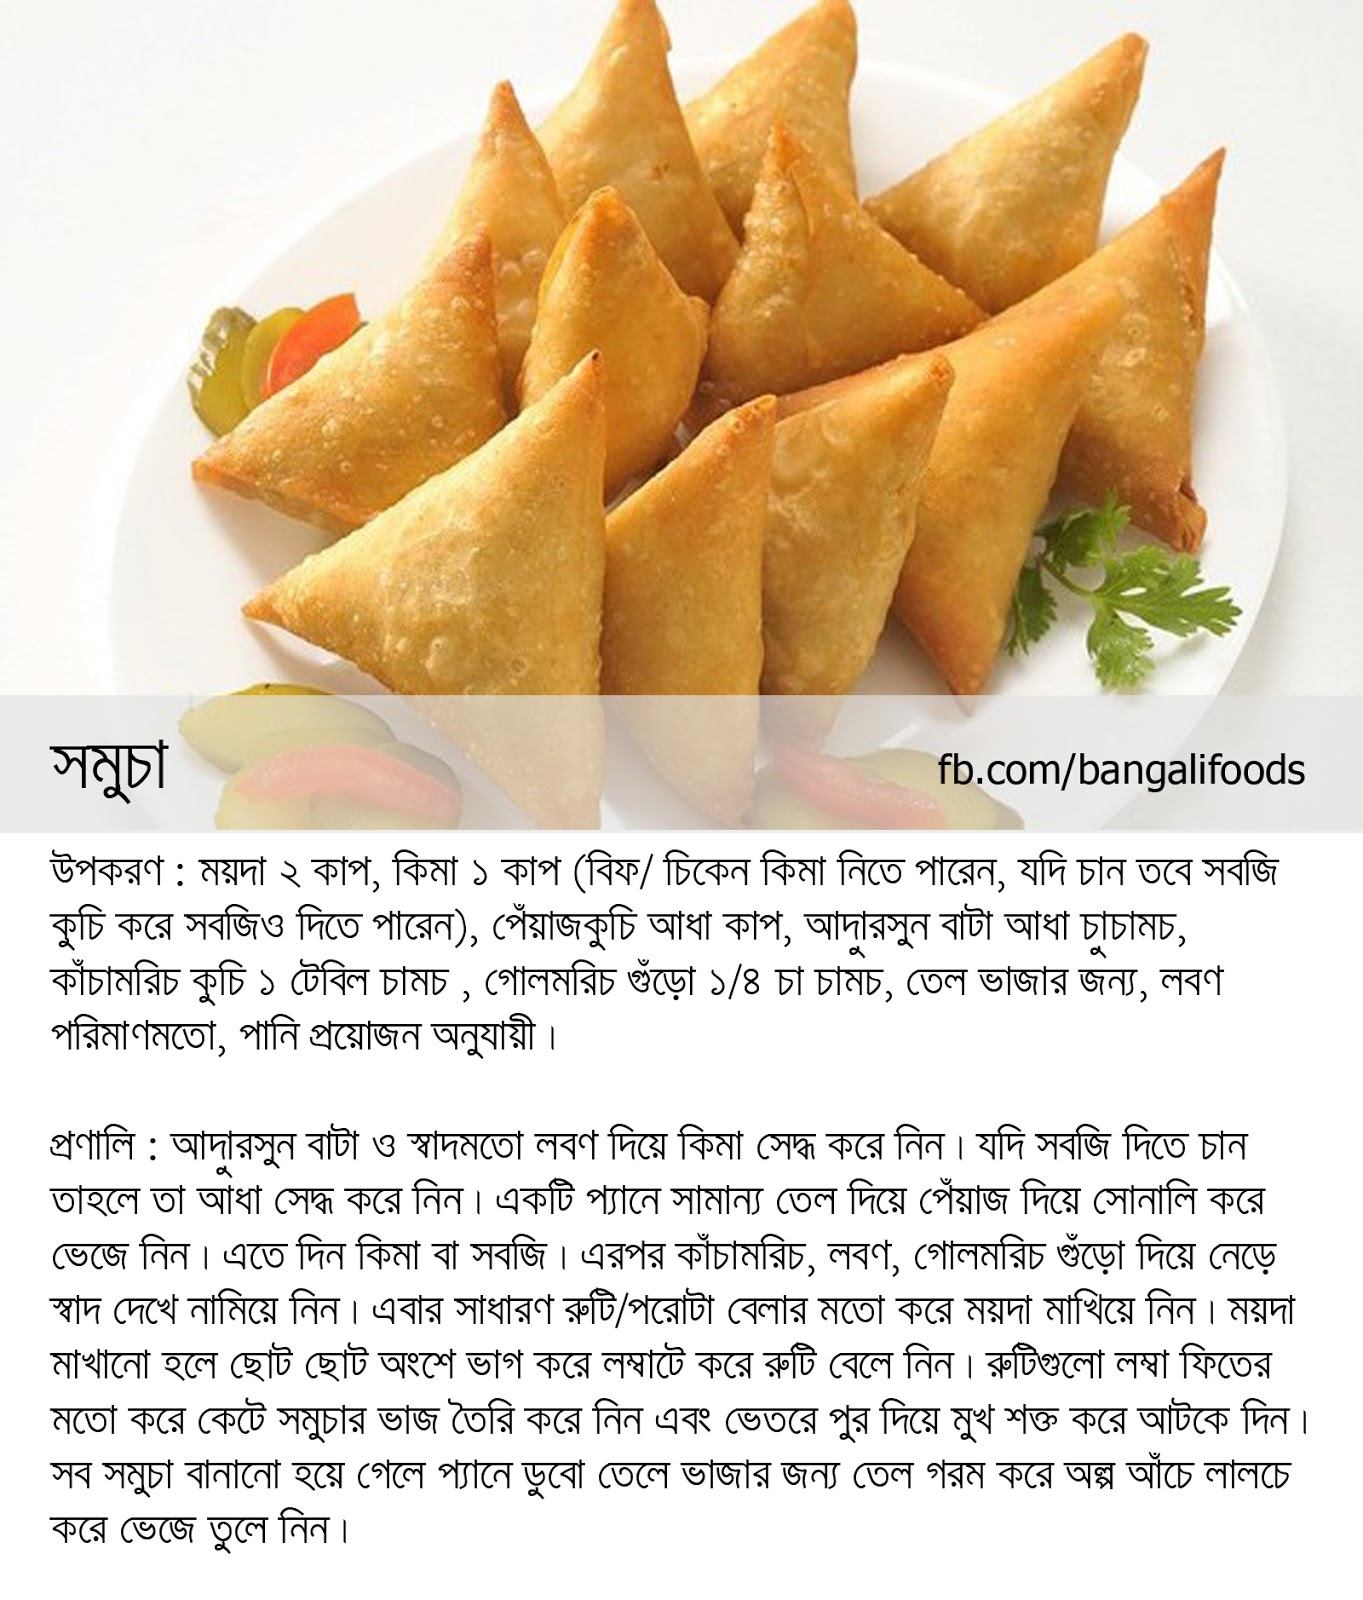 Bangali foods snack food recipes in bengali bengali somucha making recipe in bengali forumfinder Choice Image